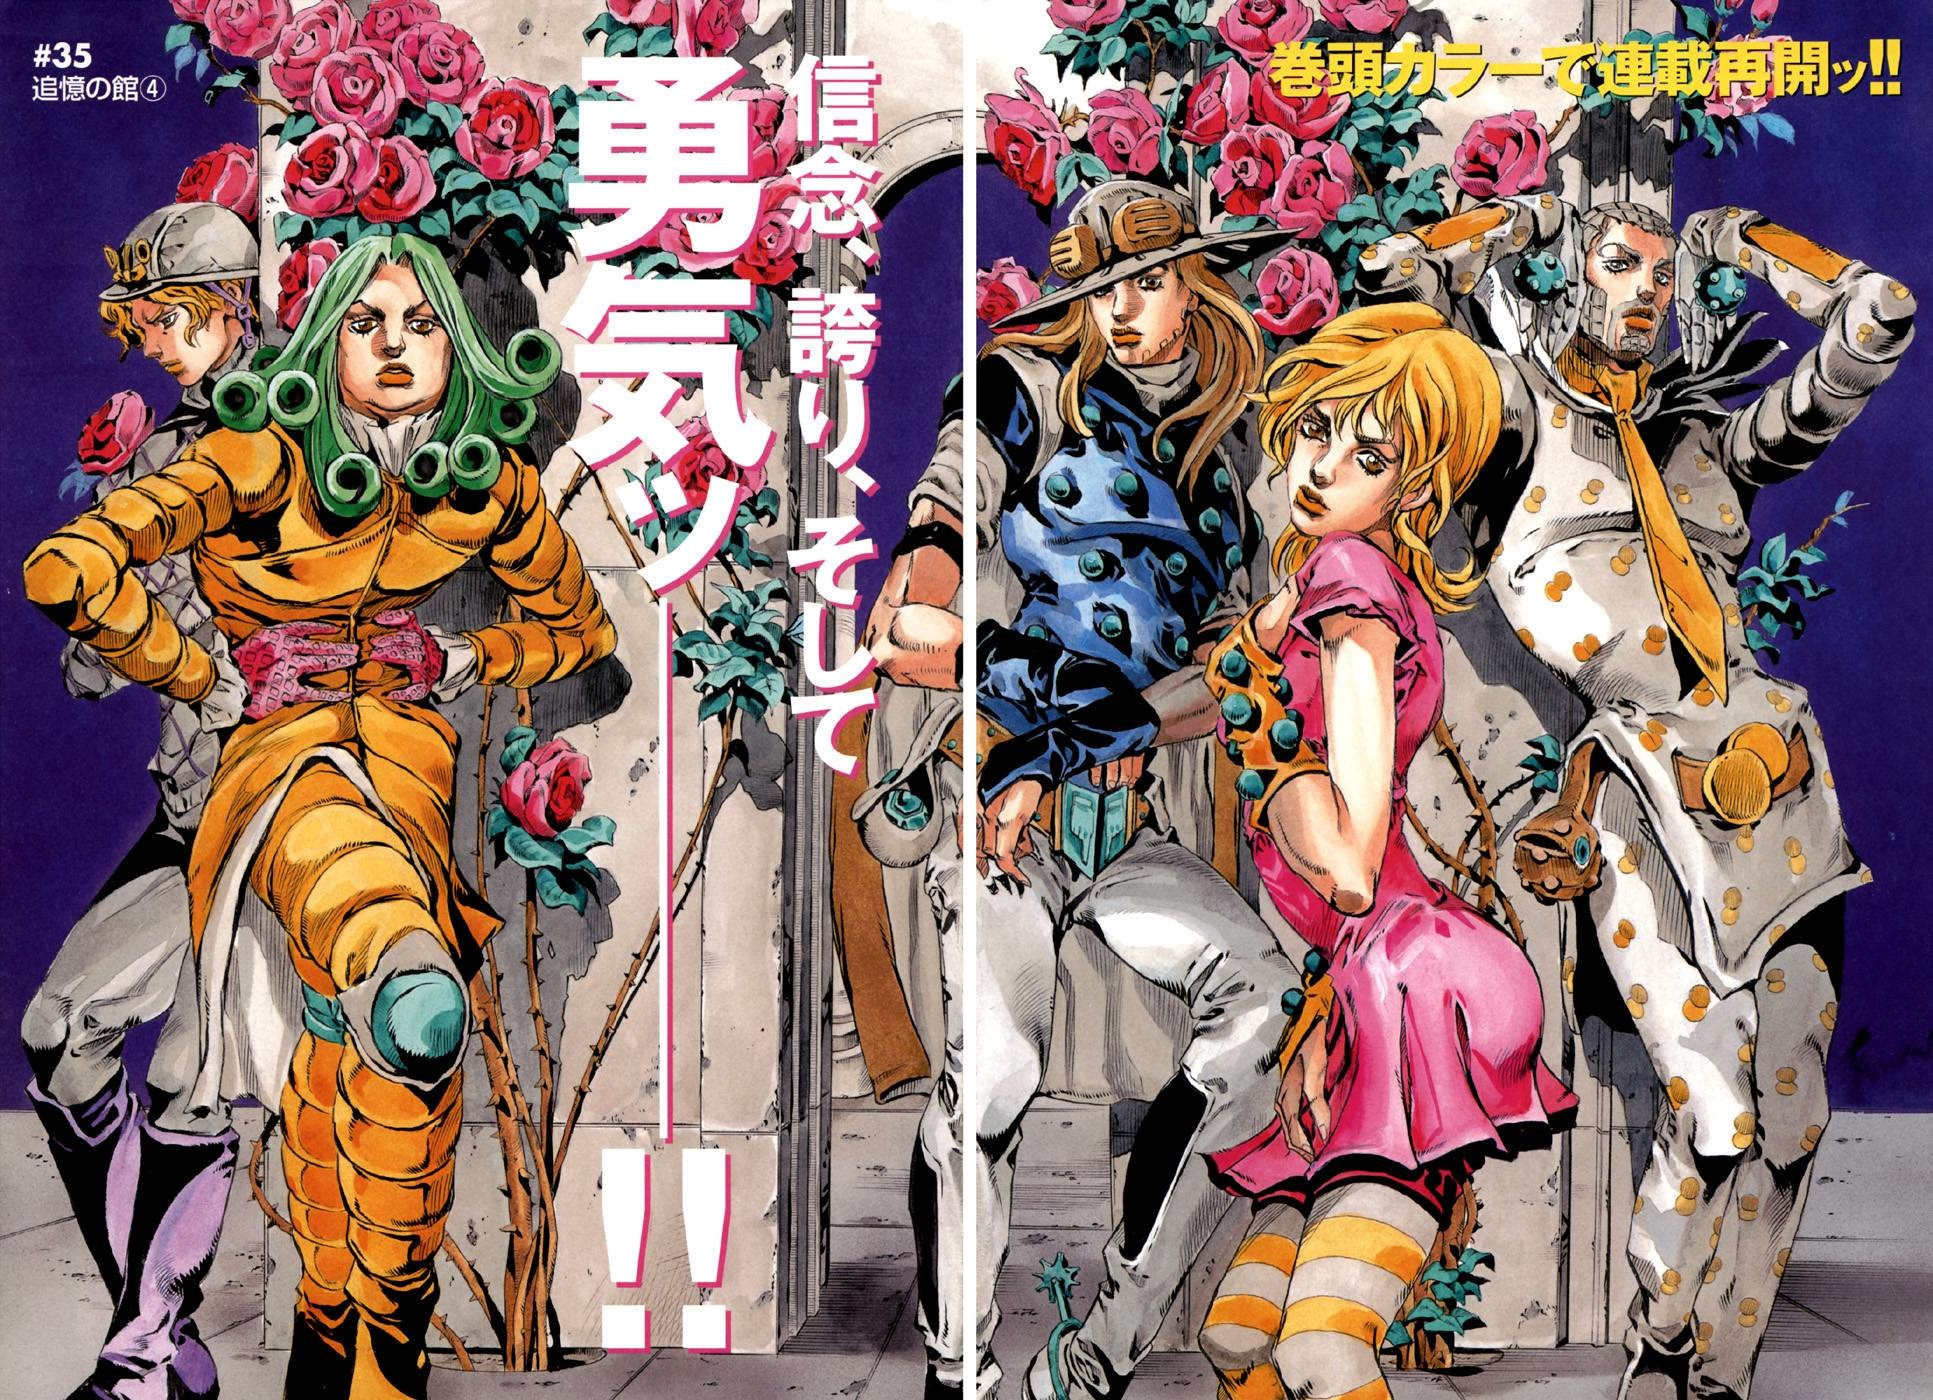 SBR Chapter 59 Magazine Cover B